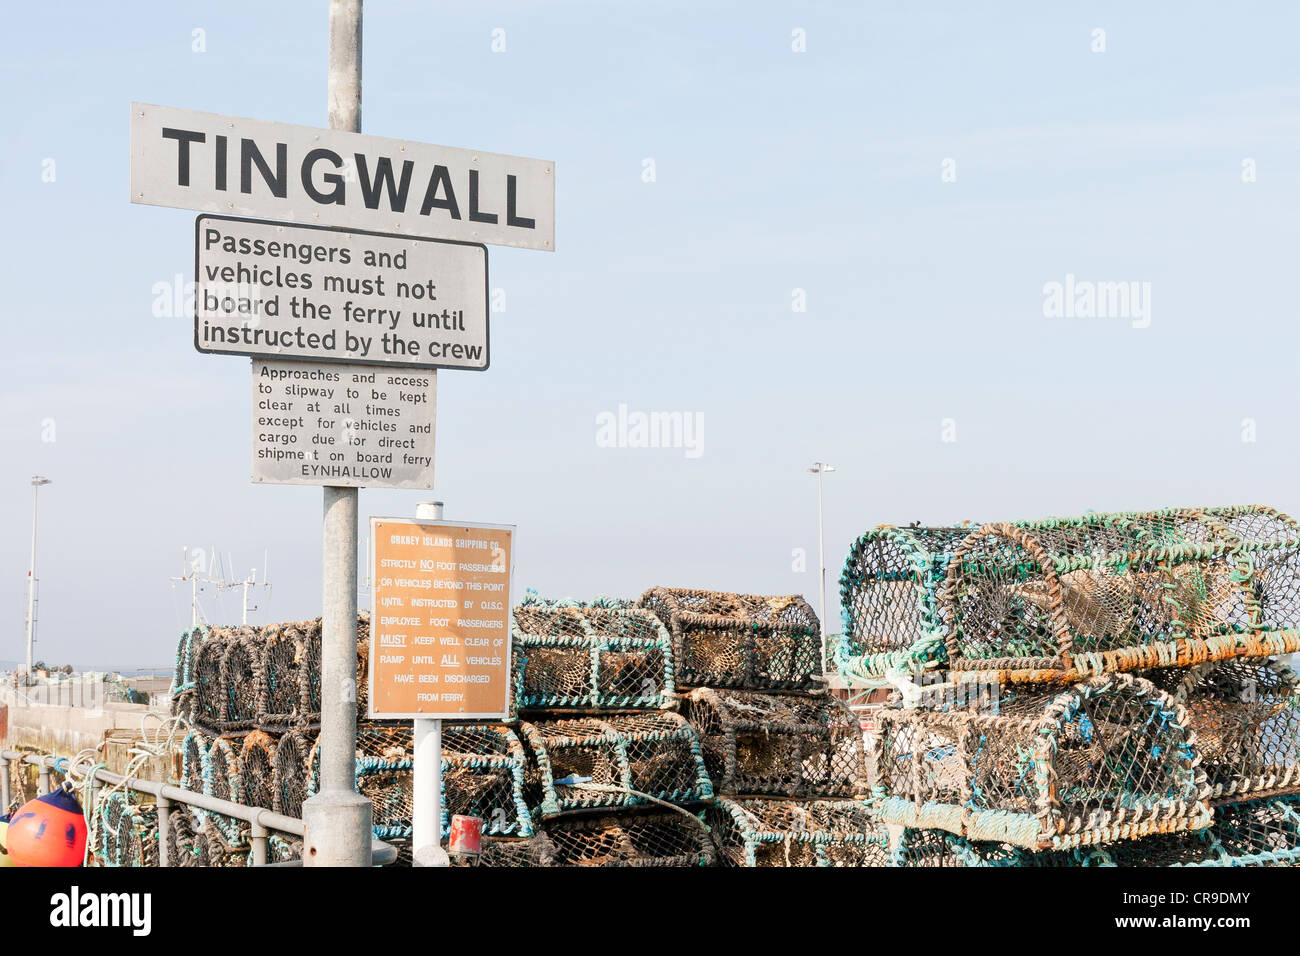 Tingwall Harbour - Orkney Isles, Scotland - Stock Image